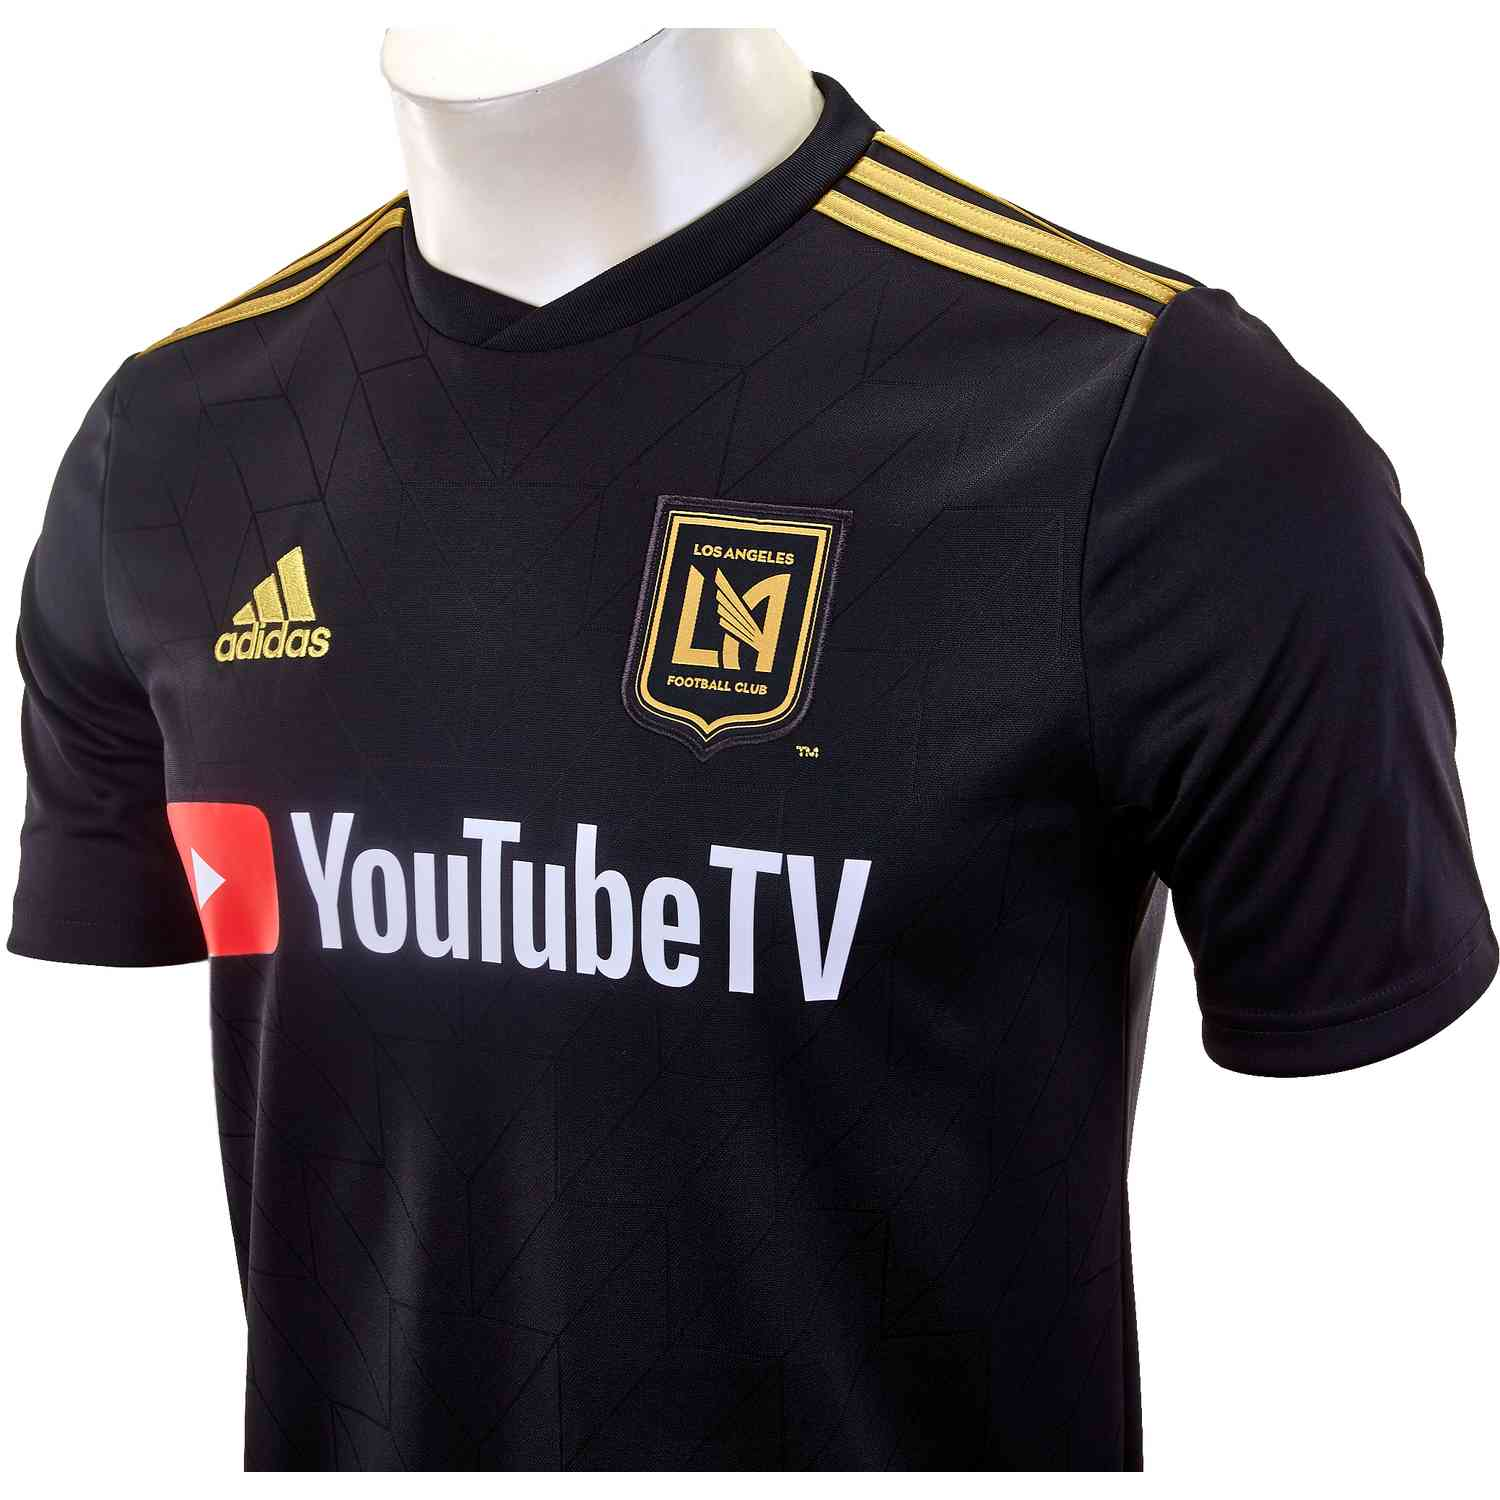 2018/19 Kids adidas LAFC Home Jersey - Soccer Master